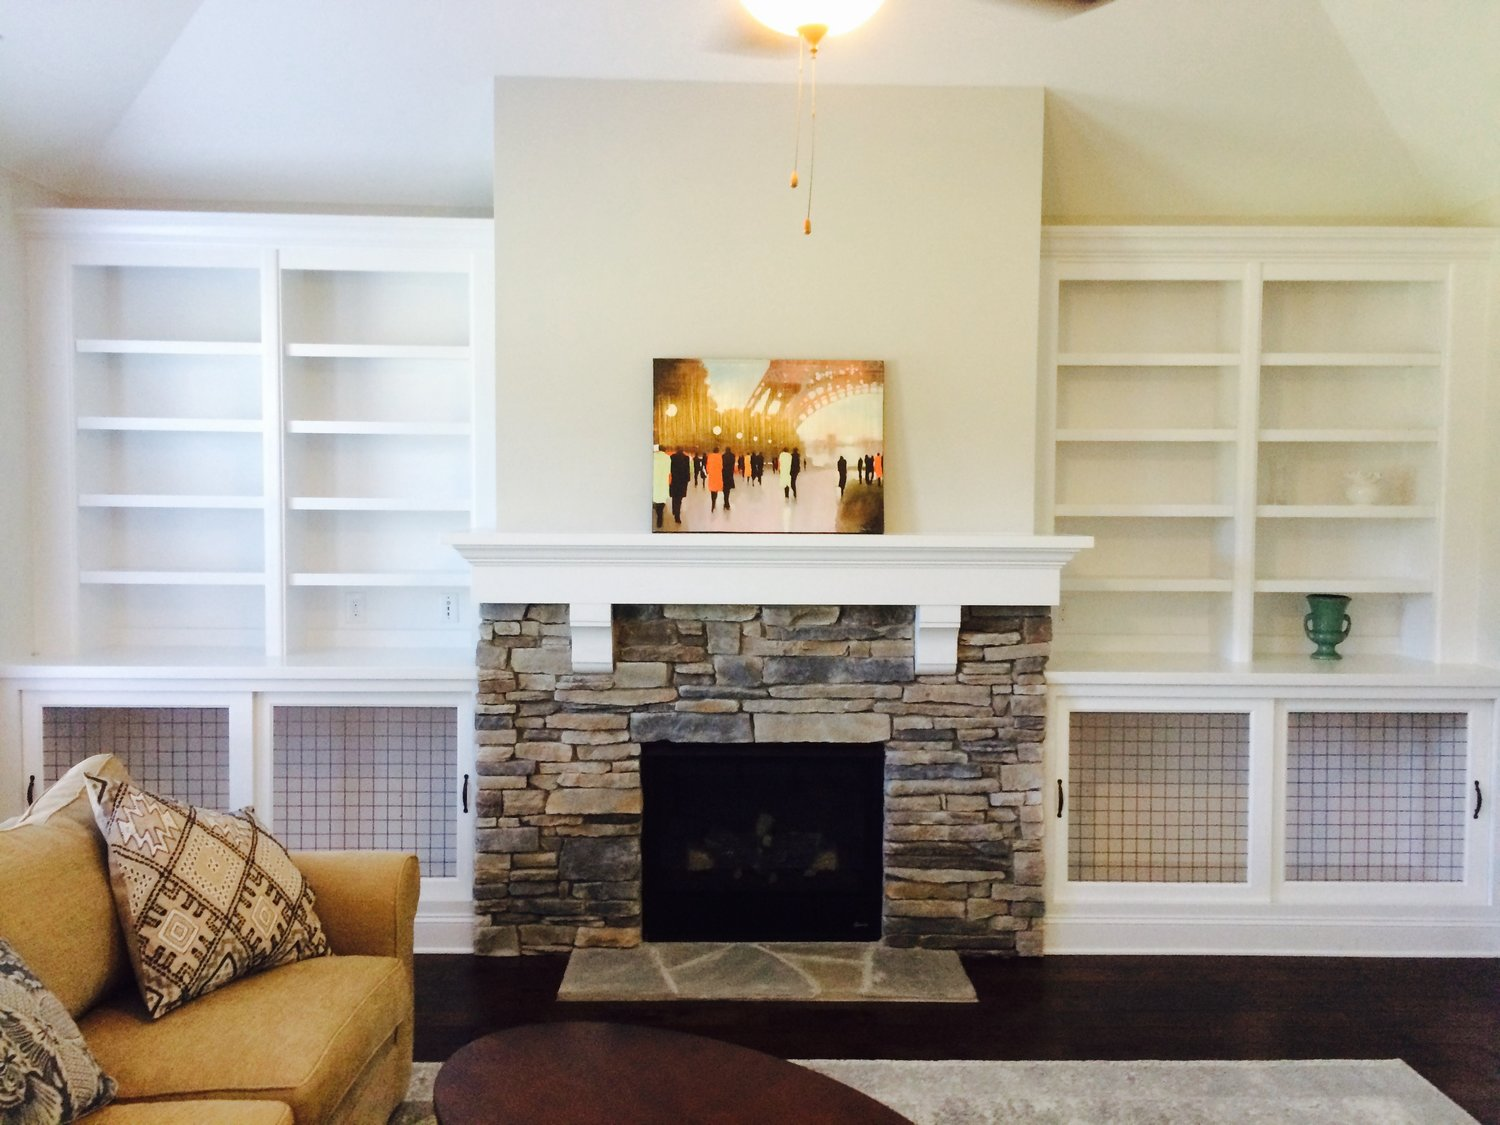 Fireplace Built-Ins with Adjustable Shelves, Crown, and Bypass Door Dog Crates